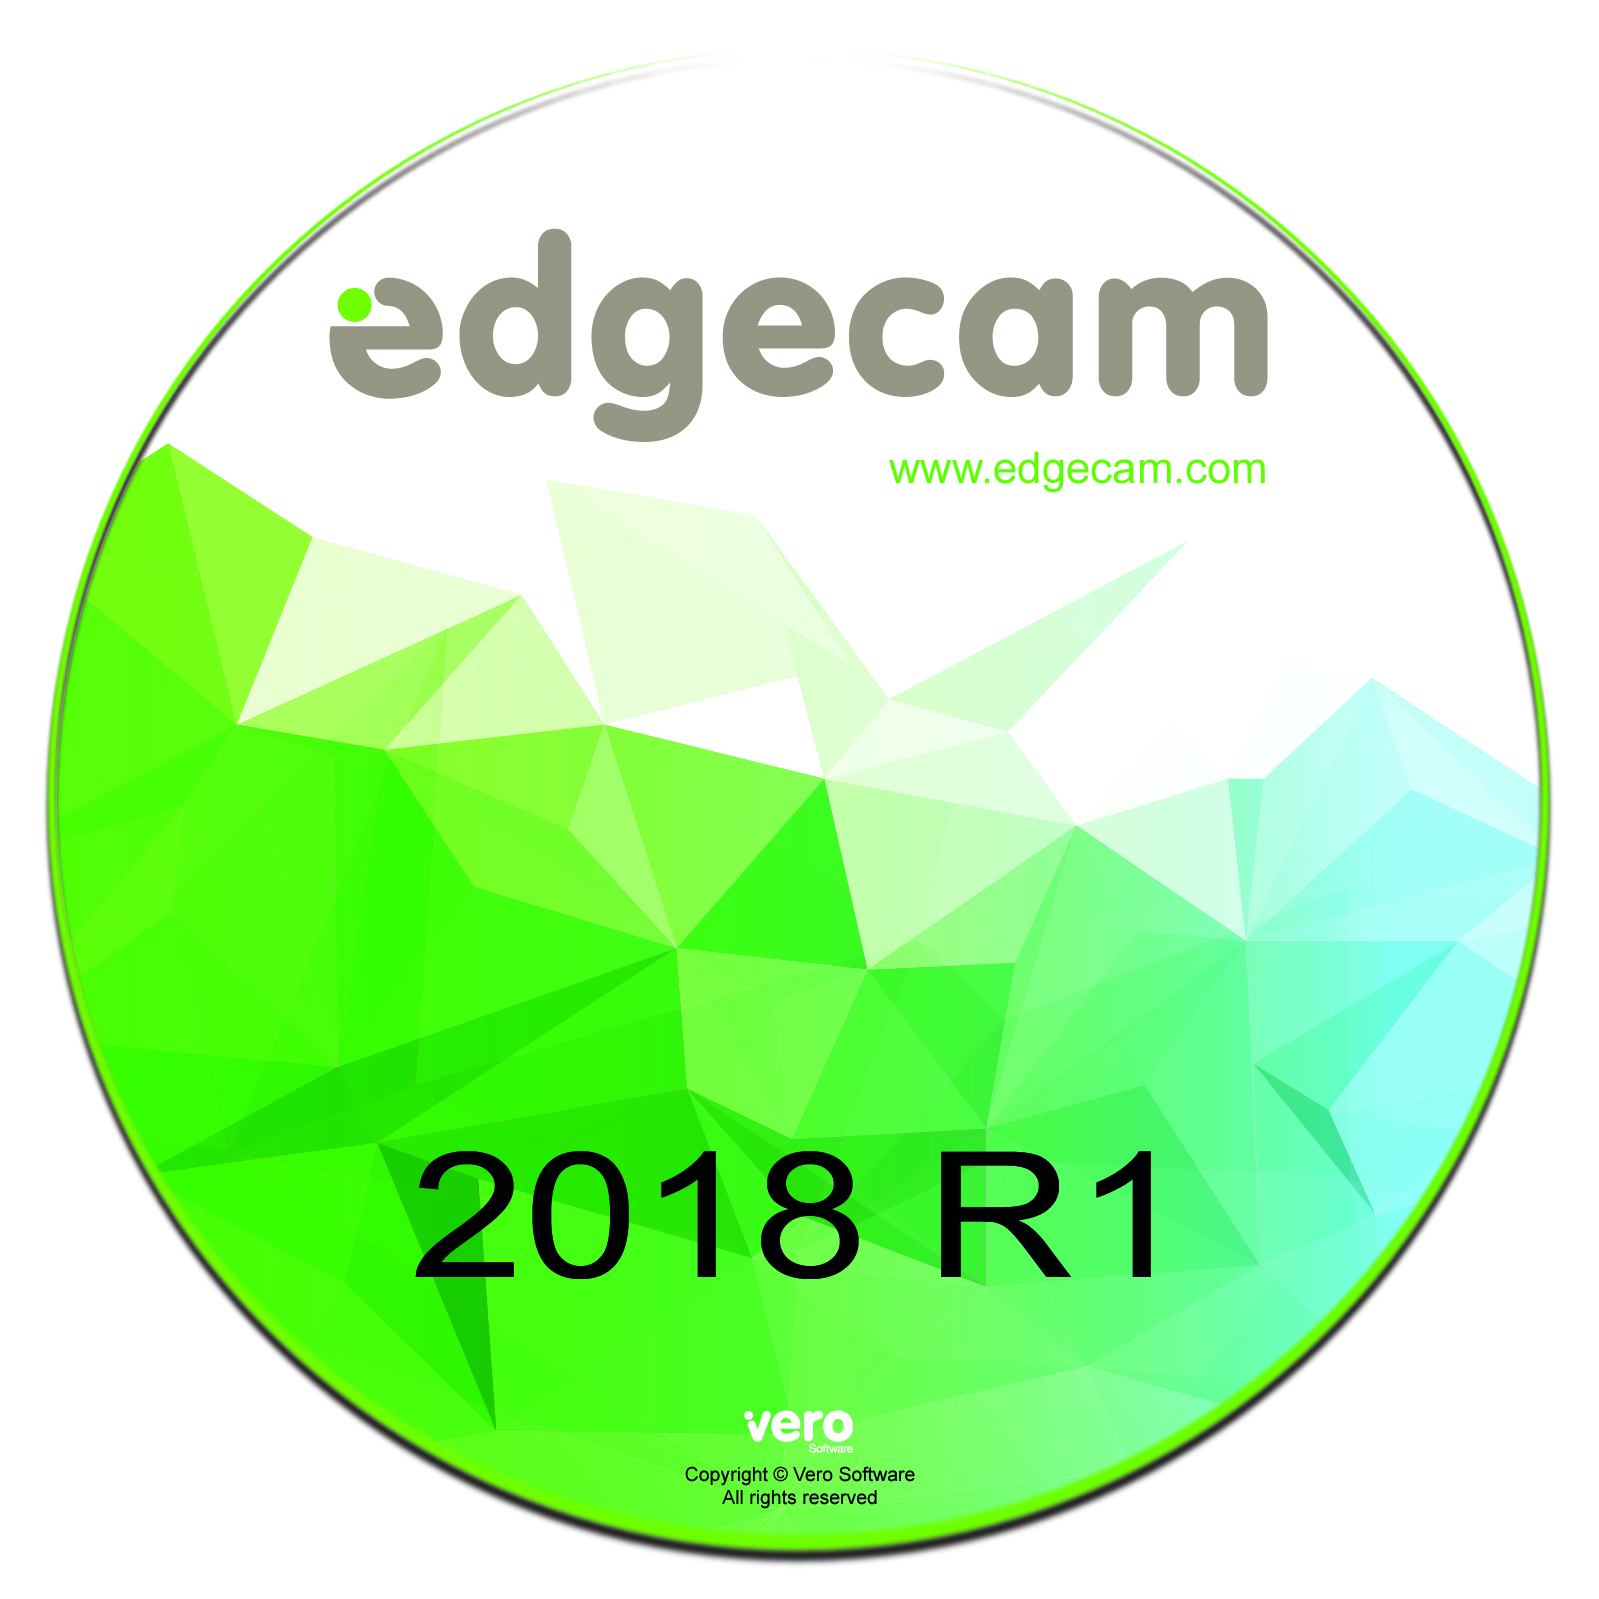 Edgecam 2018 R1 Software Update 4 is Available for Download